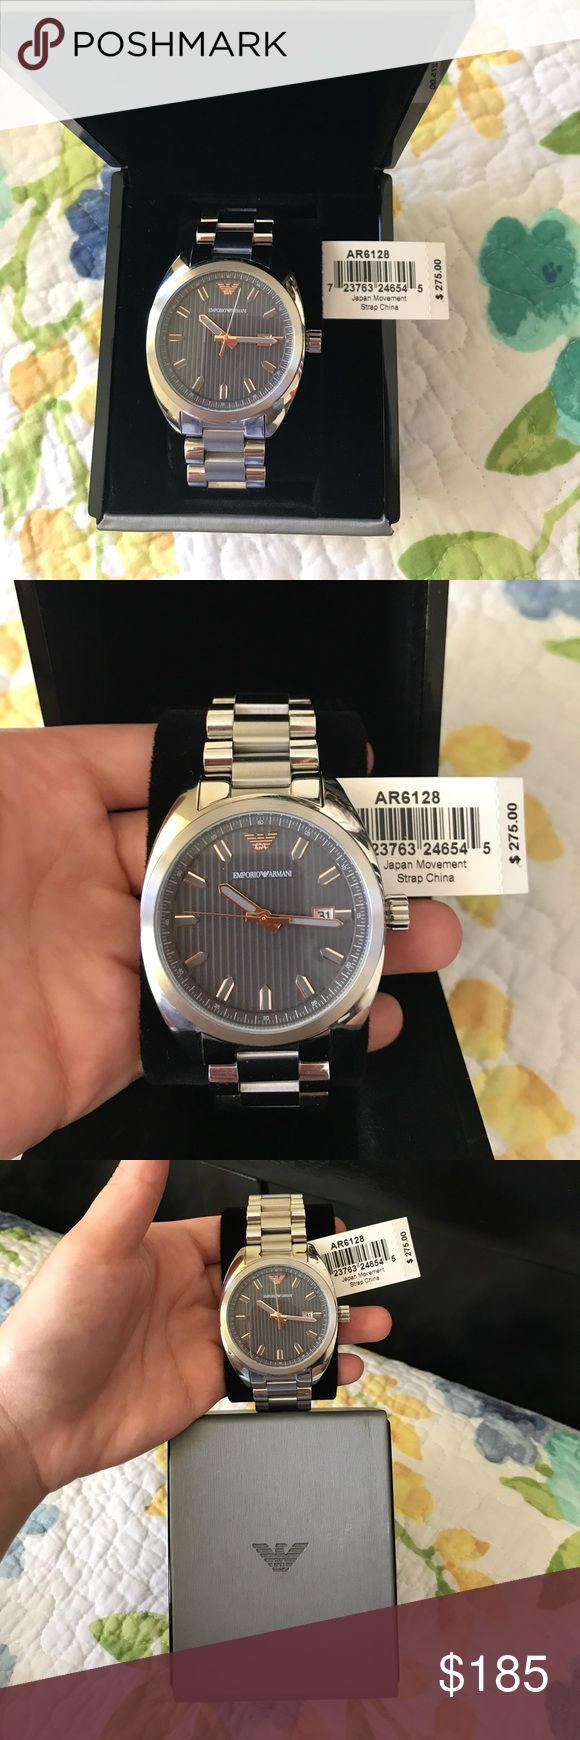 EMPORIO ARMANI BRAND NEW stainless steel watch EMPORIO ARMANI BRAND NEW stainless steel gentlemen watch ⌚️ comes with box just as seen in pictures! Emporio Armani Accessories Watches